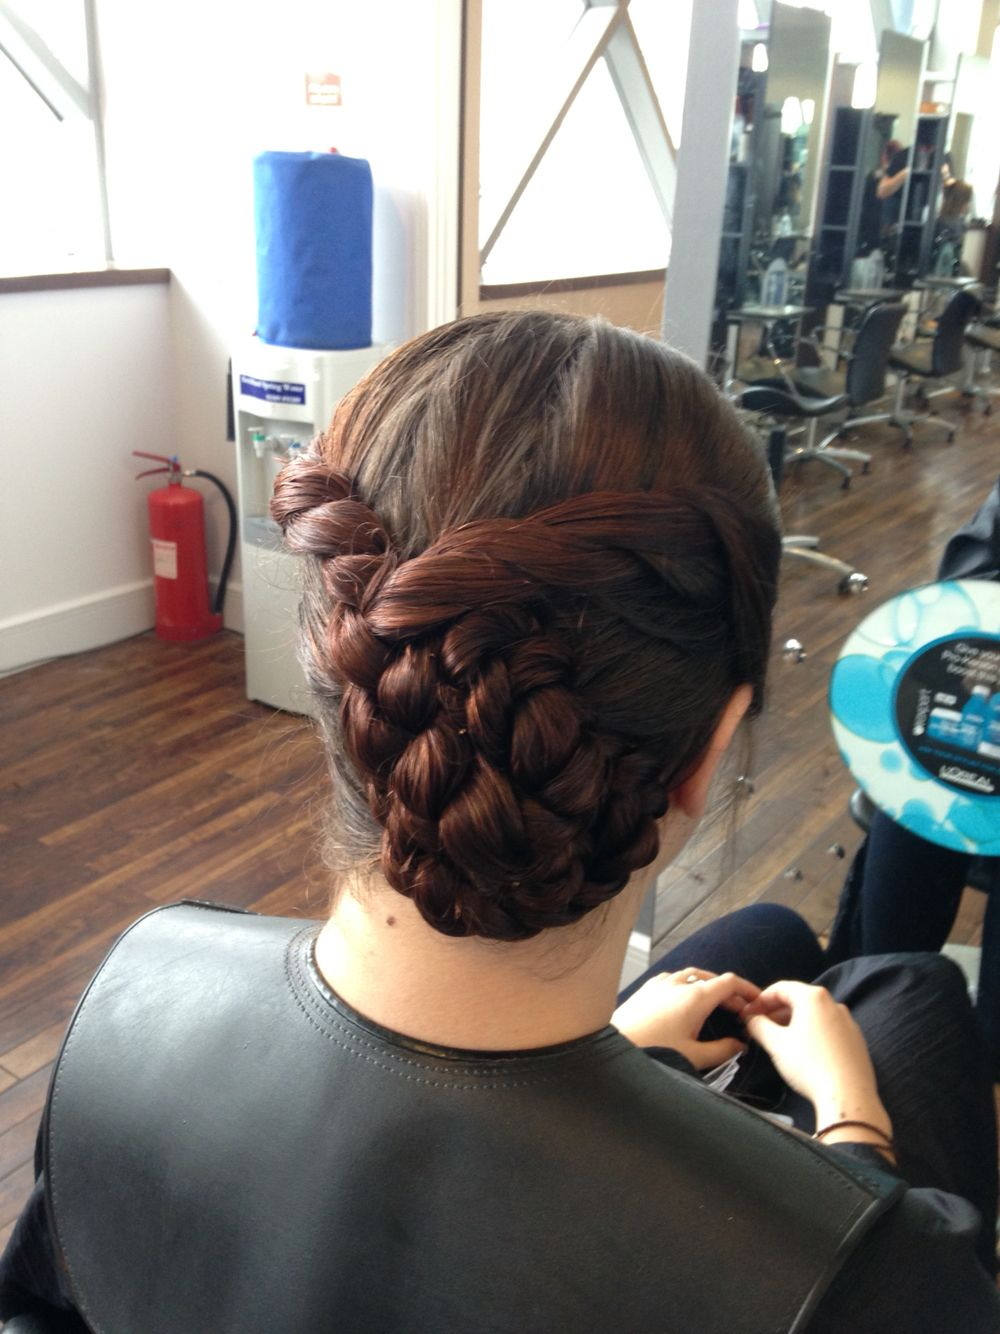 My hair with my magic hairdresser hair styles d pinterest